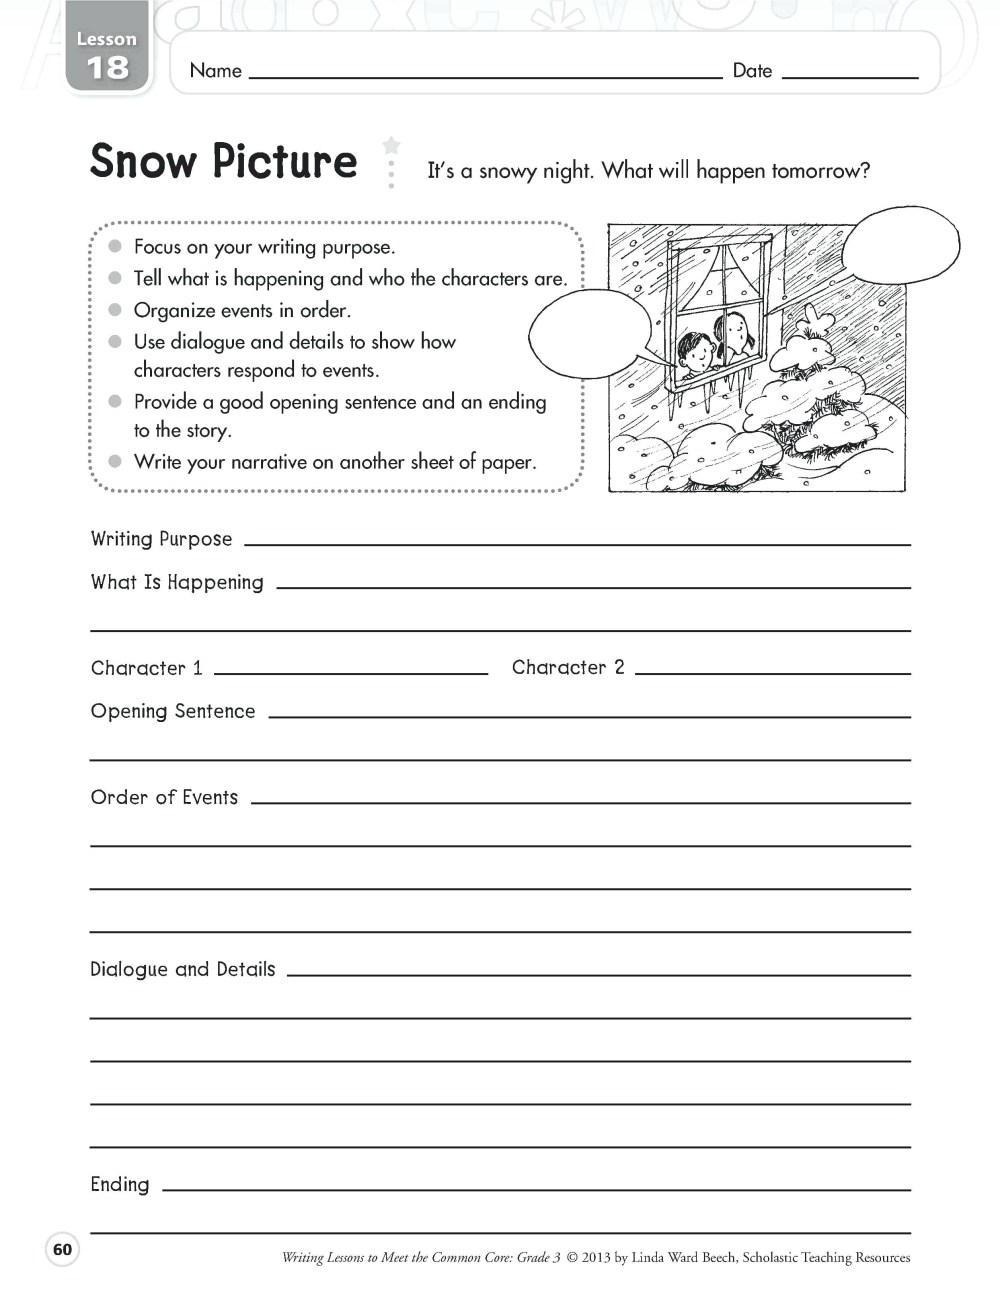 medium resolution of For Character Education Caring Worksheets   Printable Worksheets and  Activities for Teachers